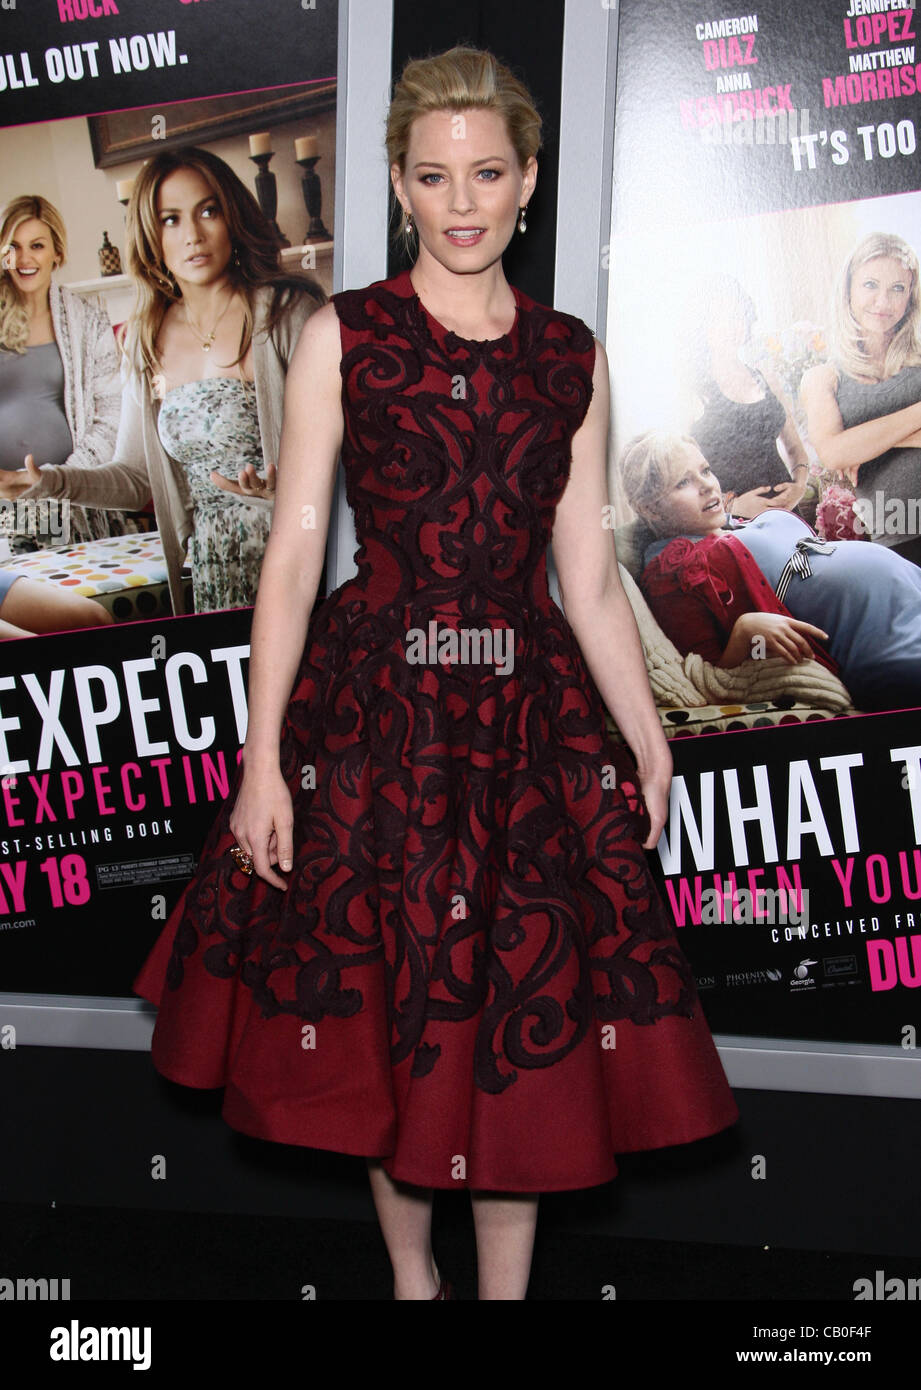 ELIZABETH BANKS WHAT TO EXPECT WHEN YOU'RE EXPECTING. LOS ANGELES PREMIERE HOLLYWOOD LOS ANGELES CALIFORNIA - Stock Image